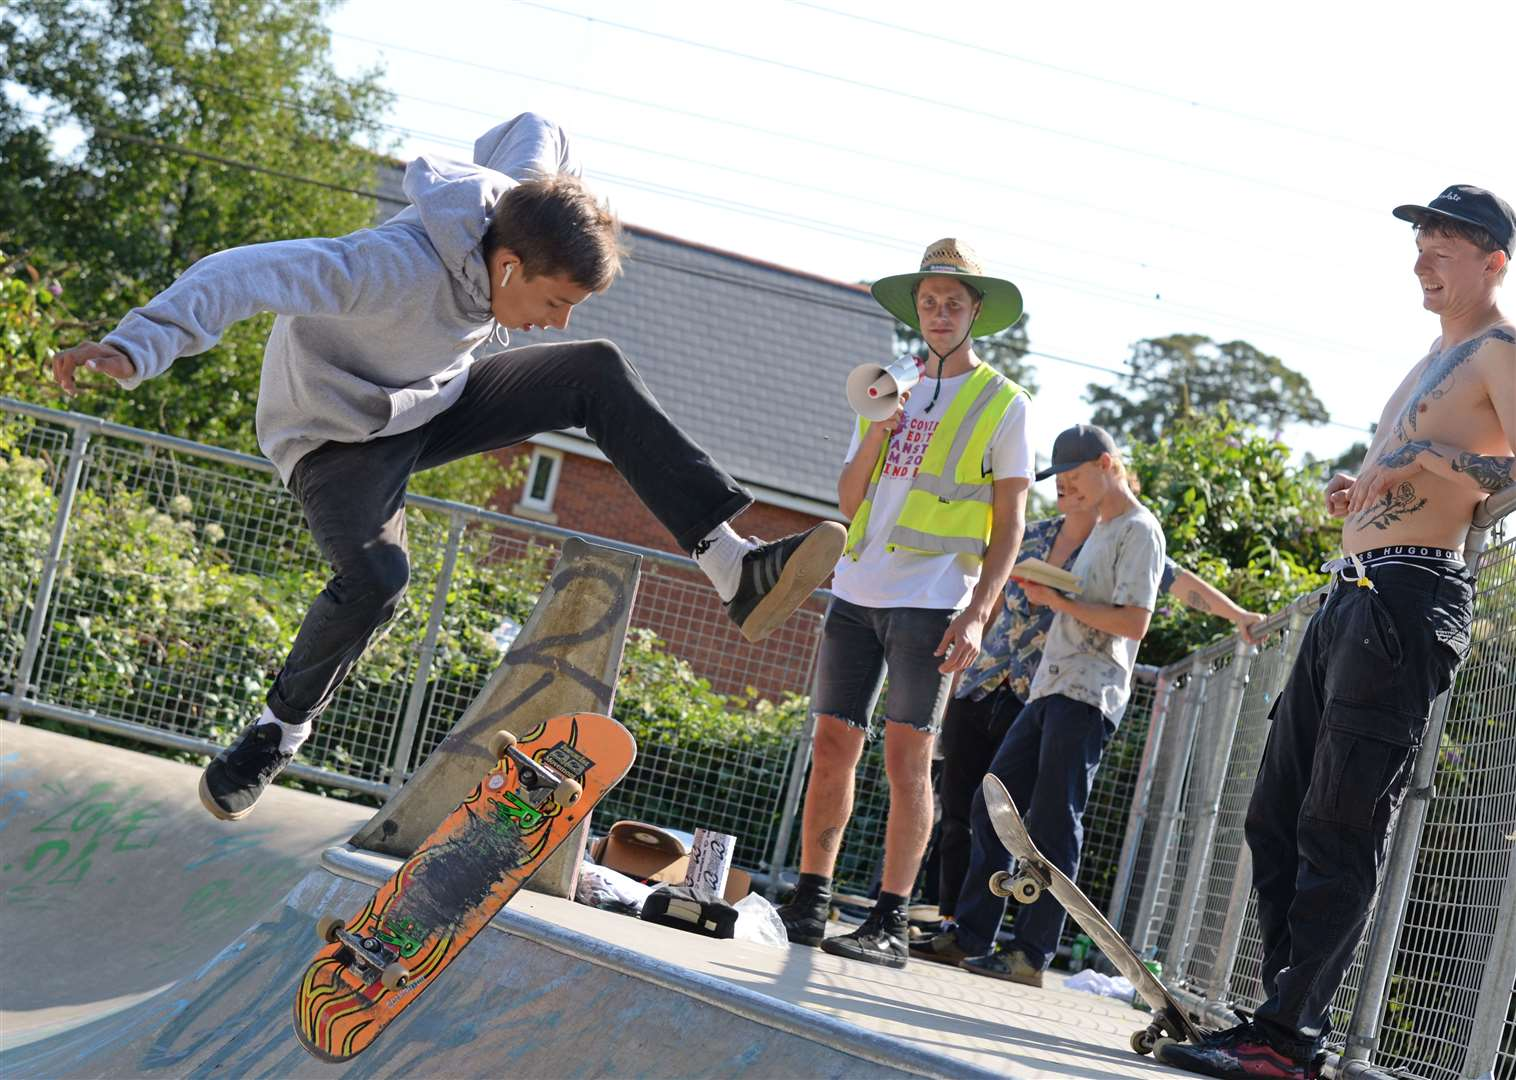 A campaign to establish a new skatepark in Lynn is getting more support